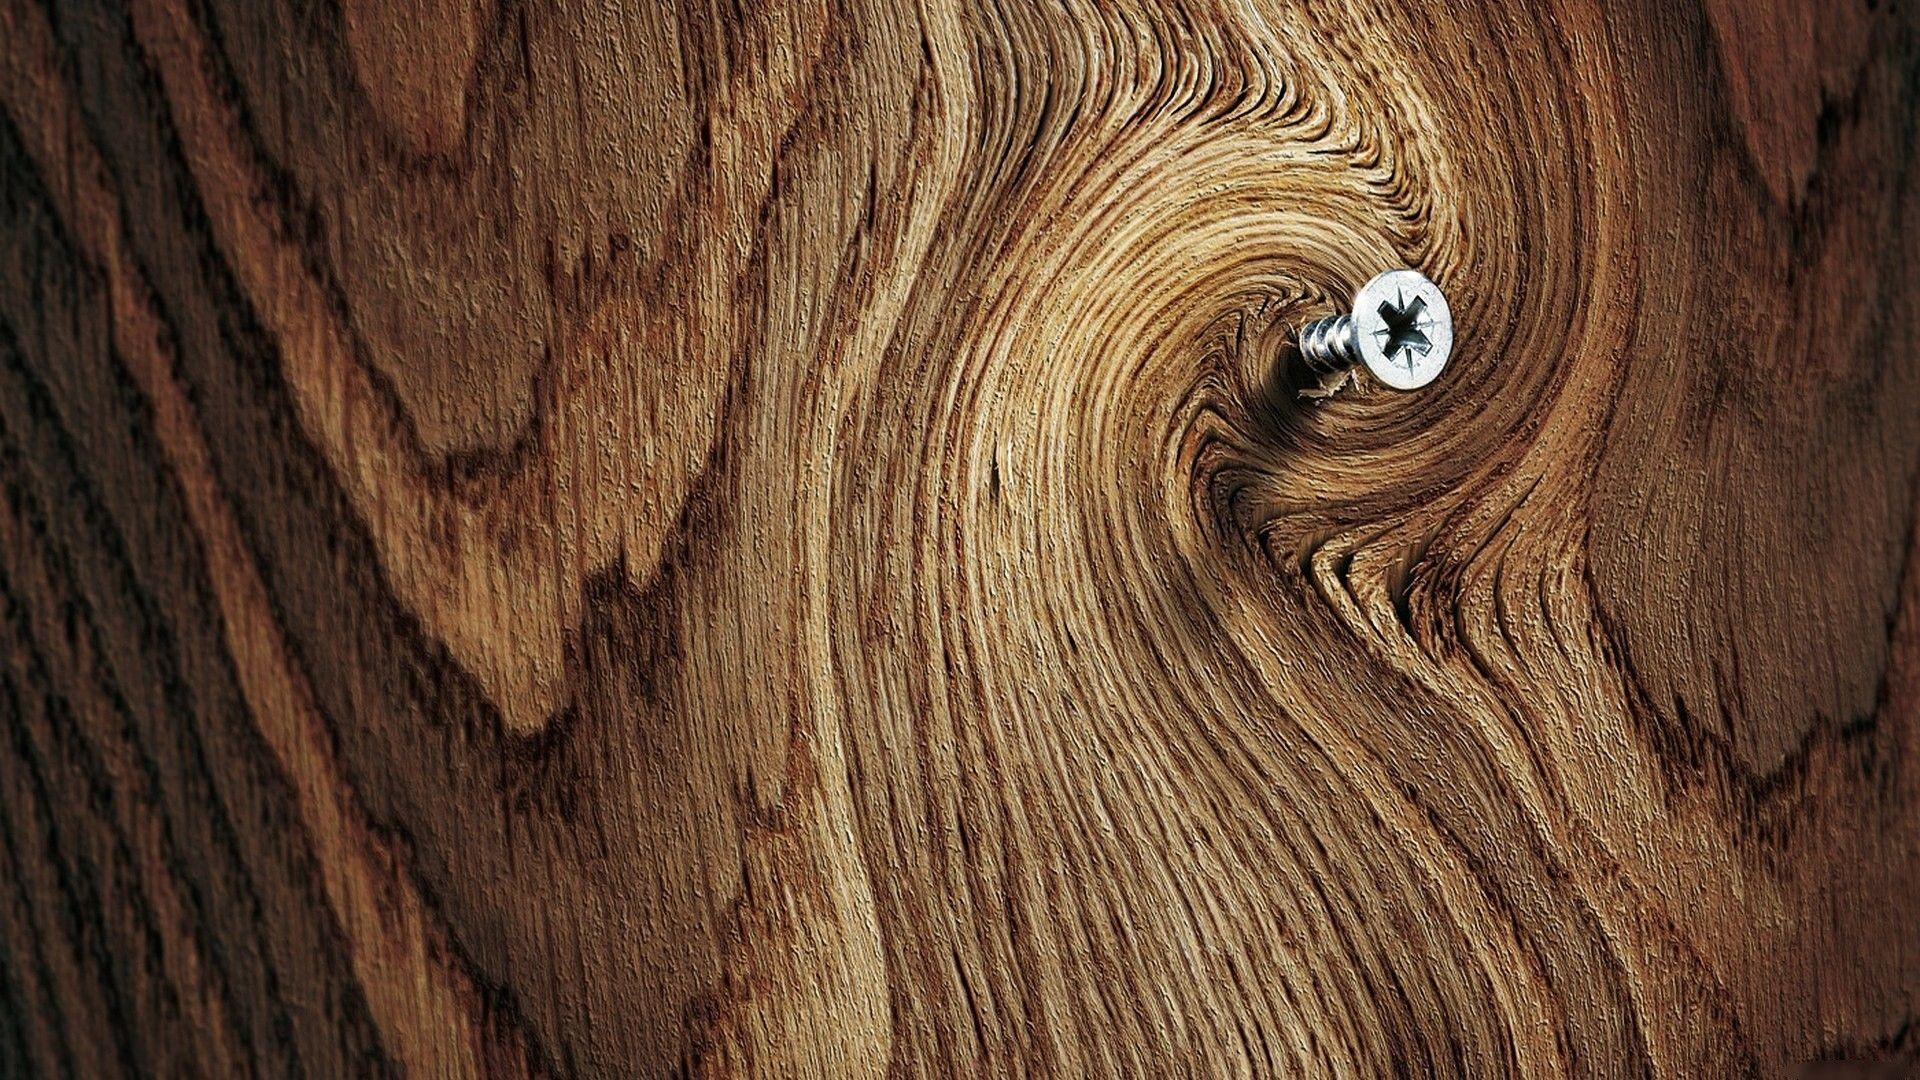 Wallpapers For > Wood Grain Wallpapers Hd